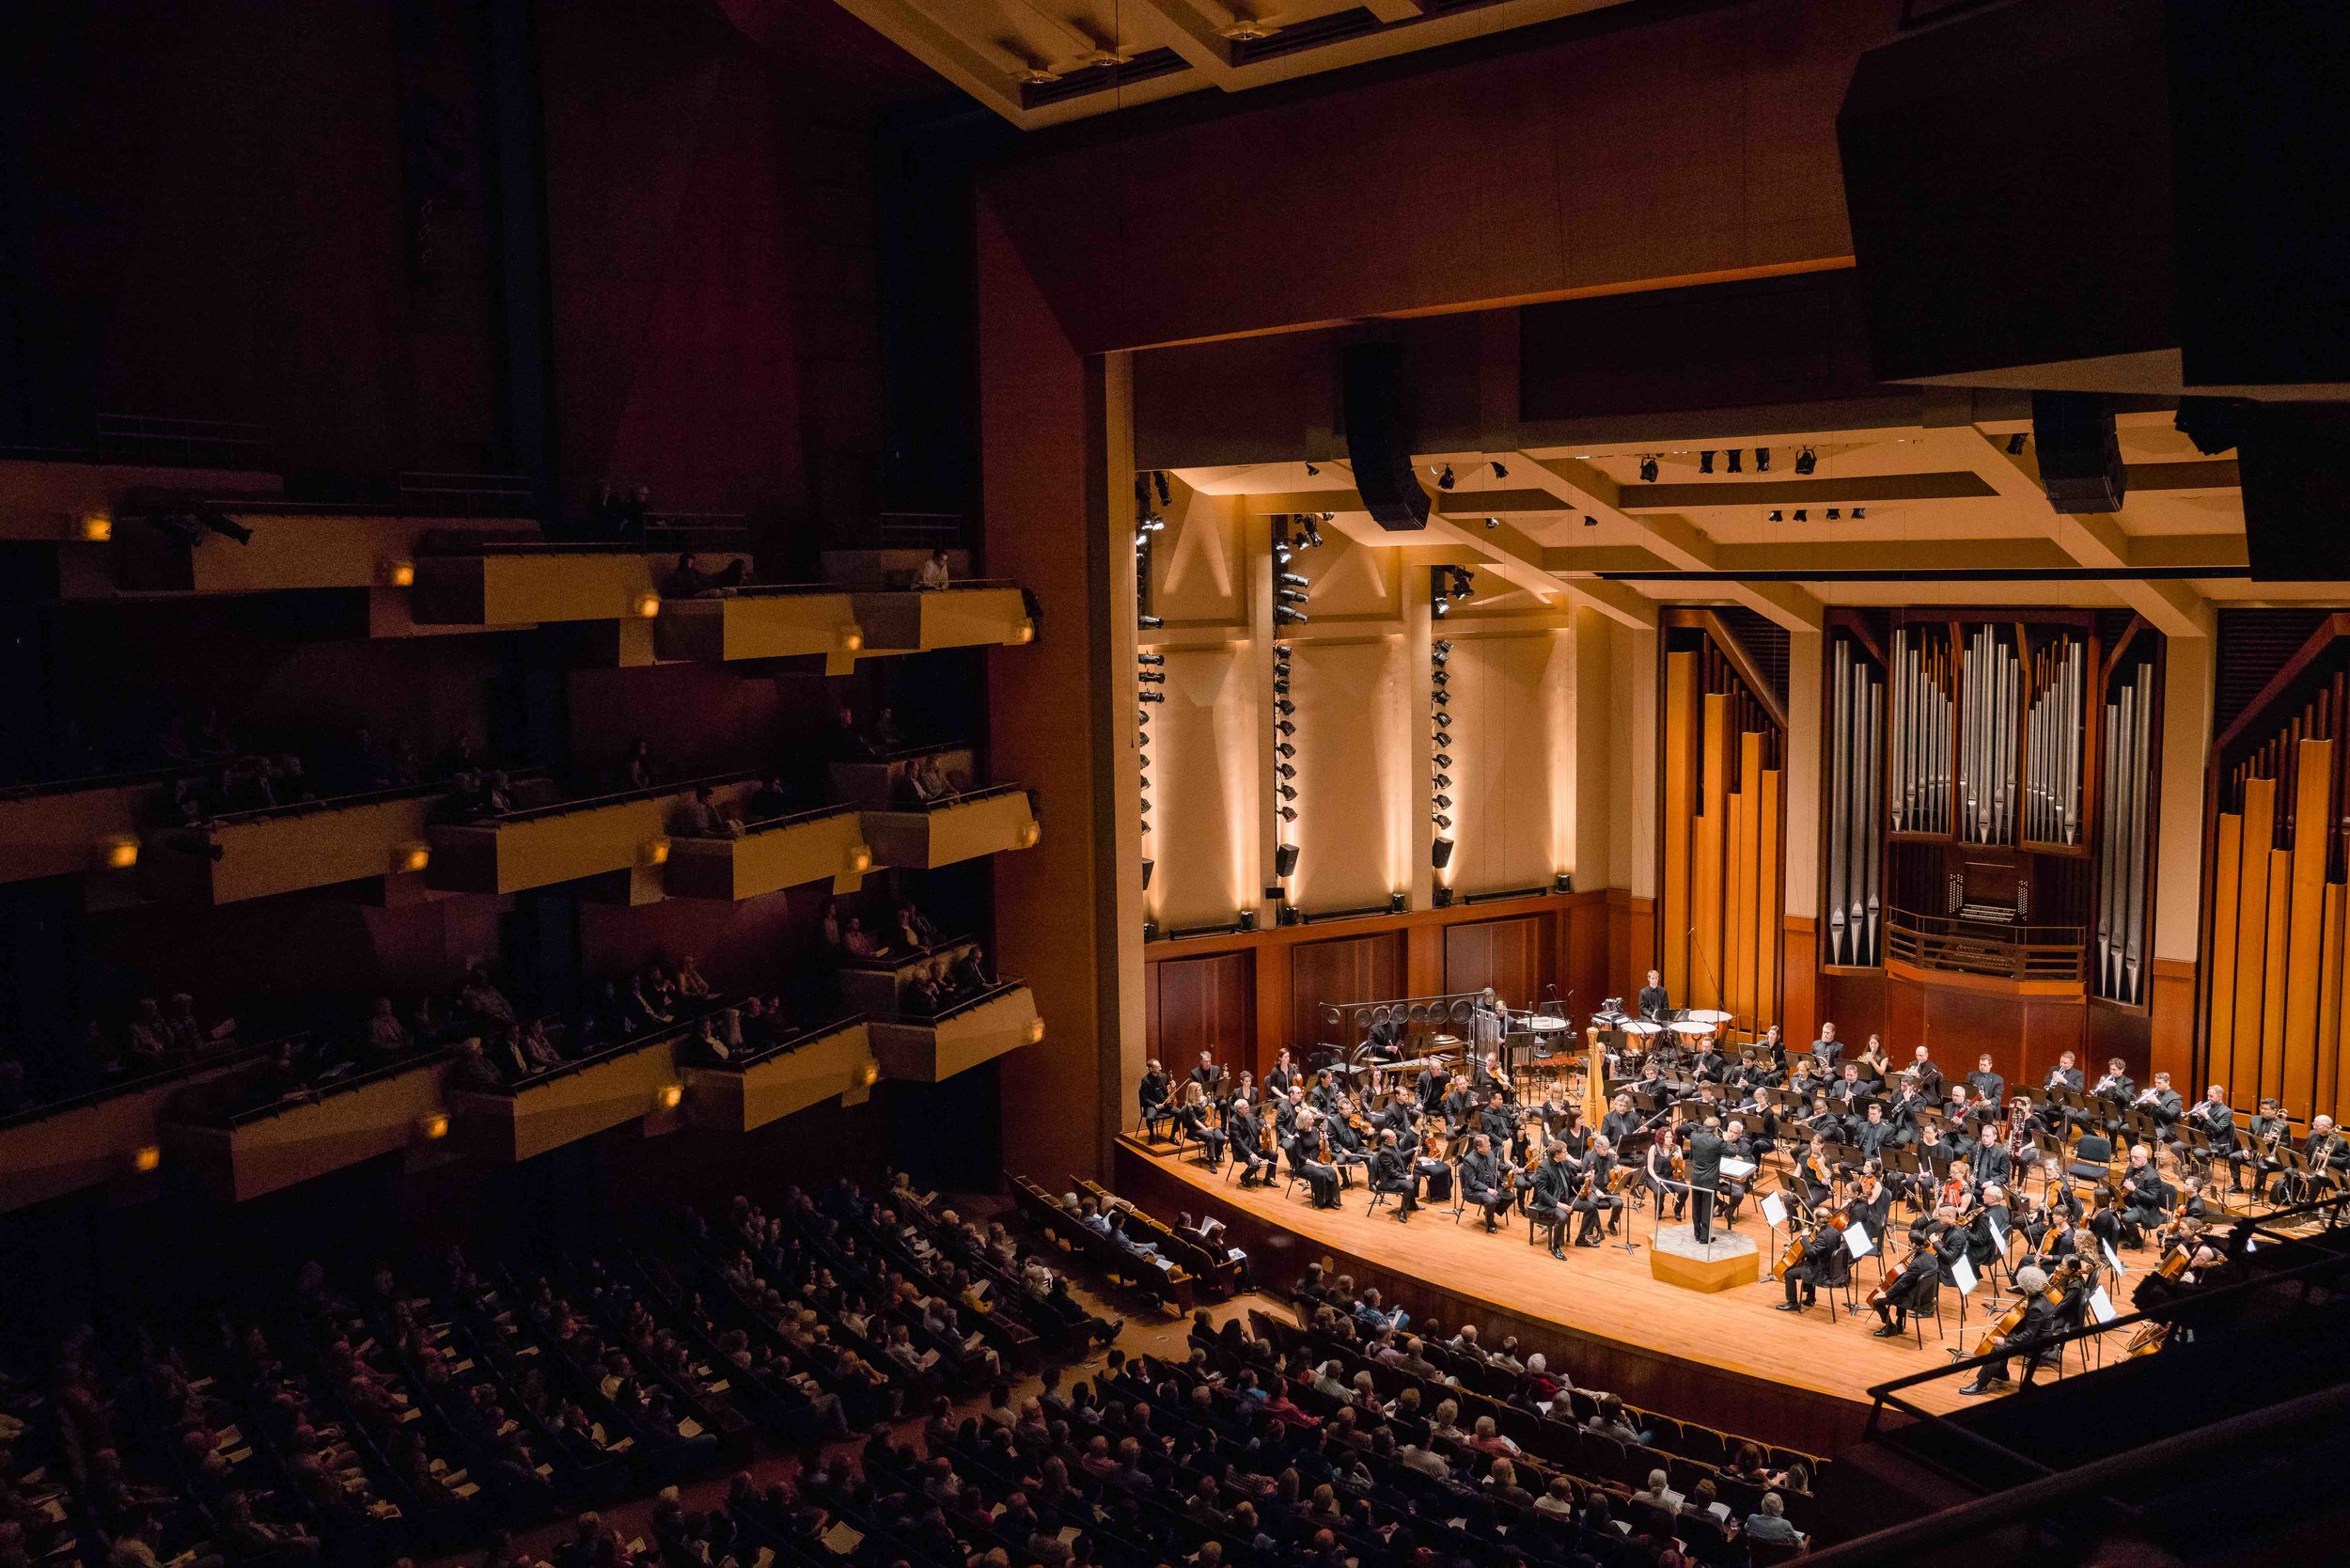 Ludovic Morlot conducts the Seattle Symphony through the timbrally-rich work of 'La Source d'un regard' by contemporary French composer, Marc-André Dalbavie in an April 2019 performance in Benaroya Hall. Photo by Brandon Patoc.